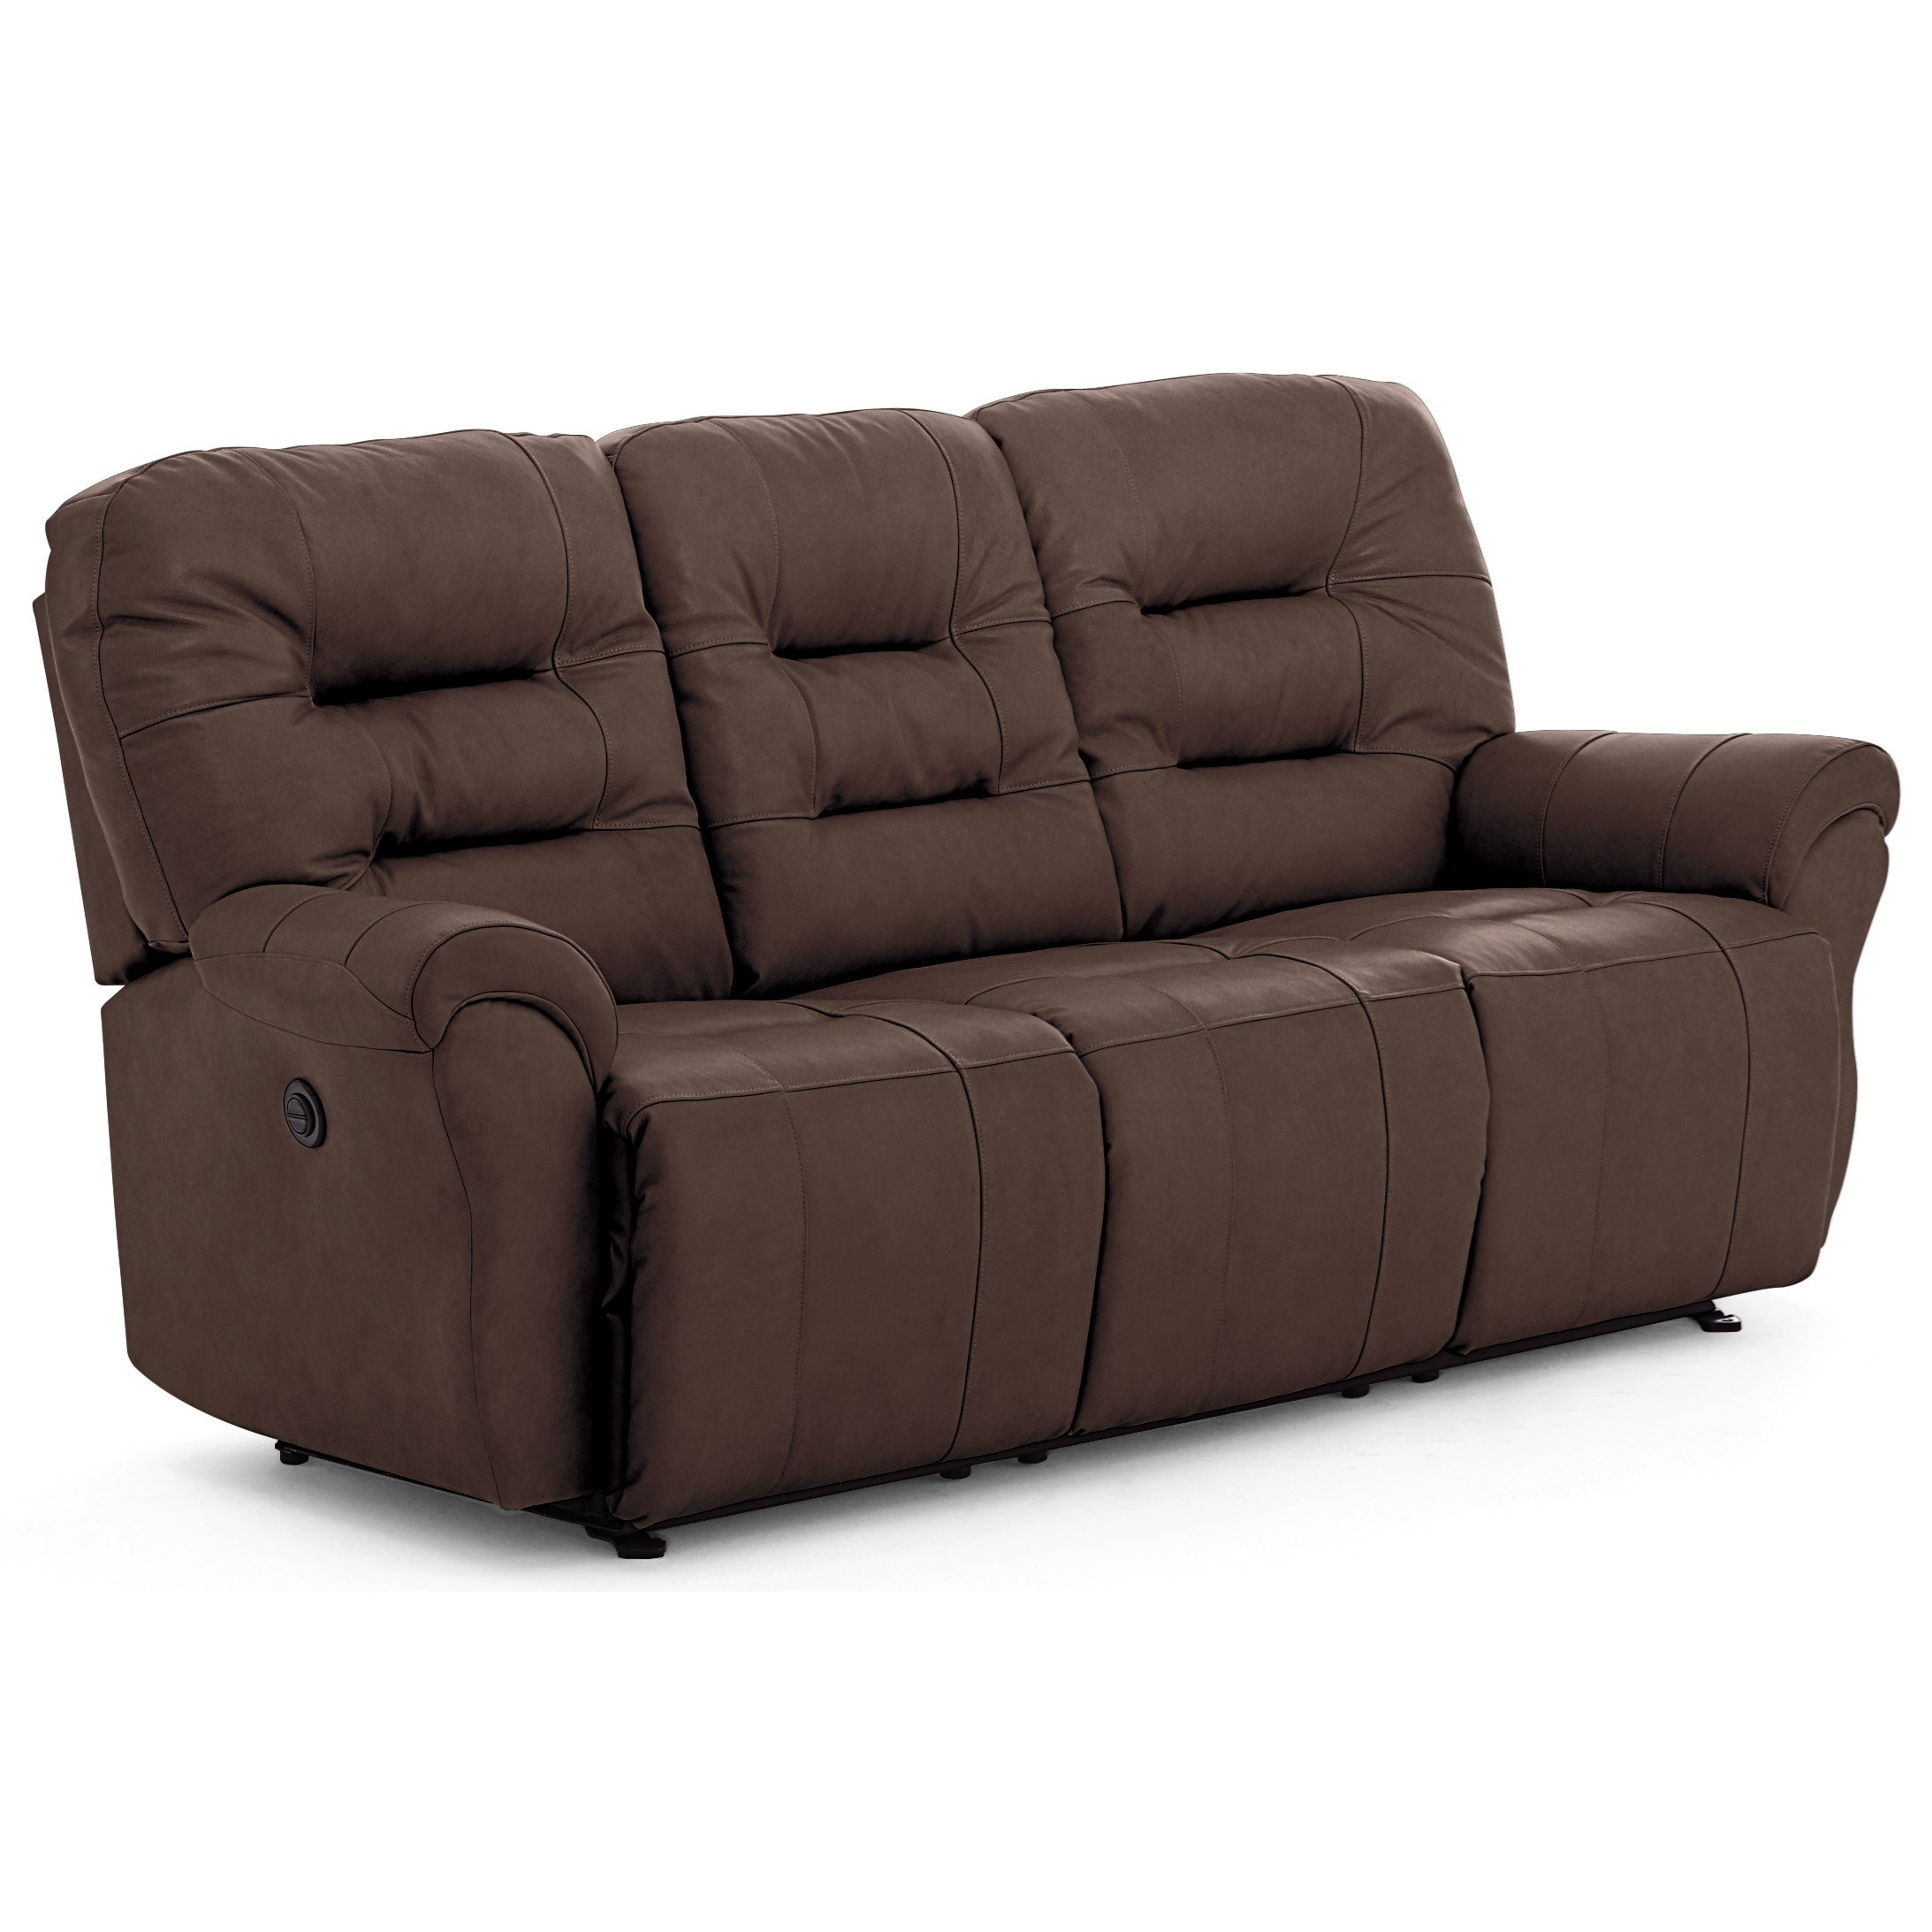 Unity Power Space Saver Sofa Chaise by Best Home Furnishings at Mueller Furniture